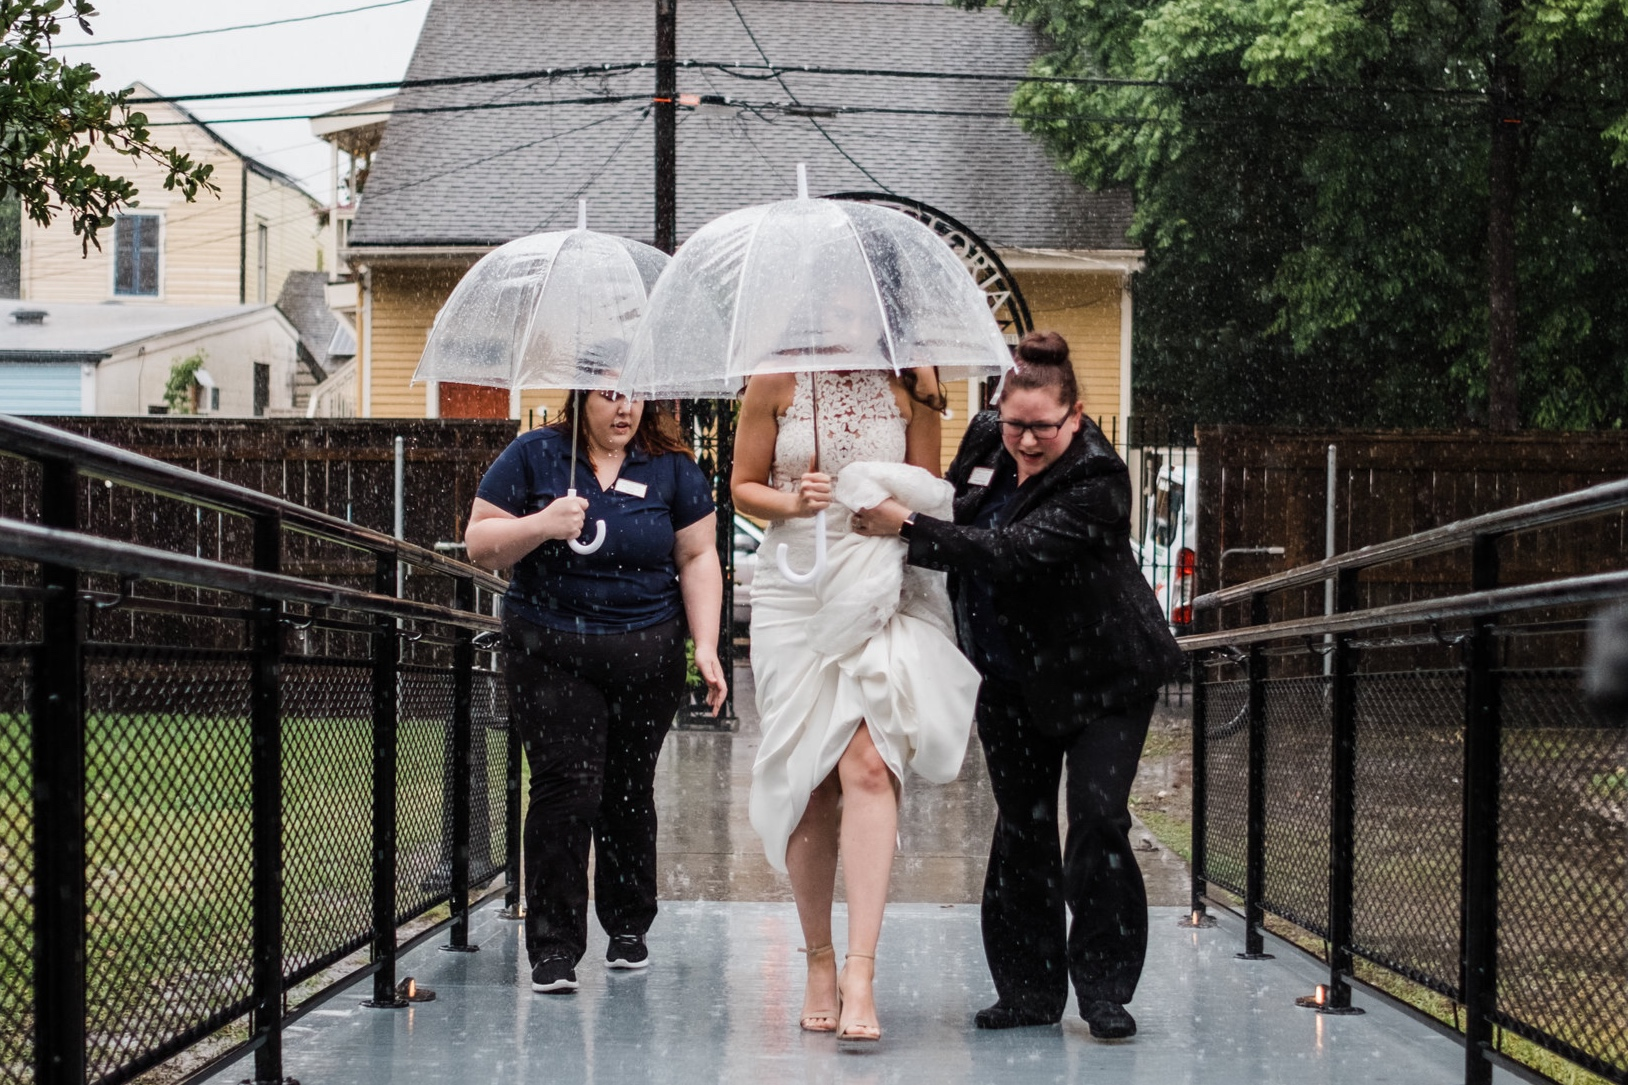 Amanda helps her bride Ashli keep dry as they head into the ceremony.   Credit: Dark Roux Photography